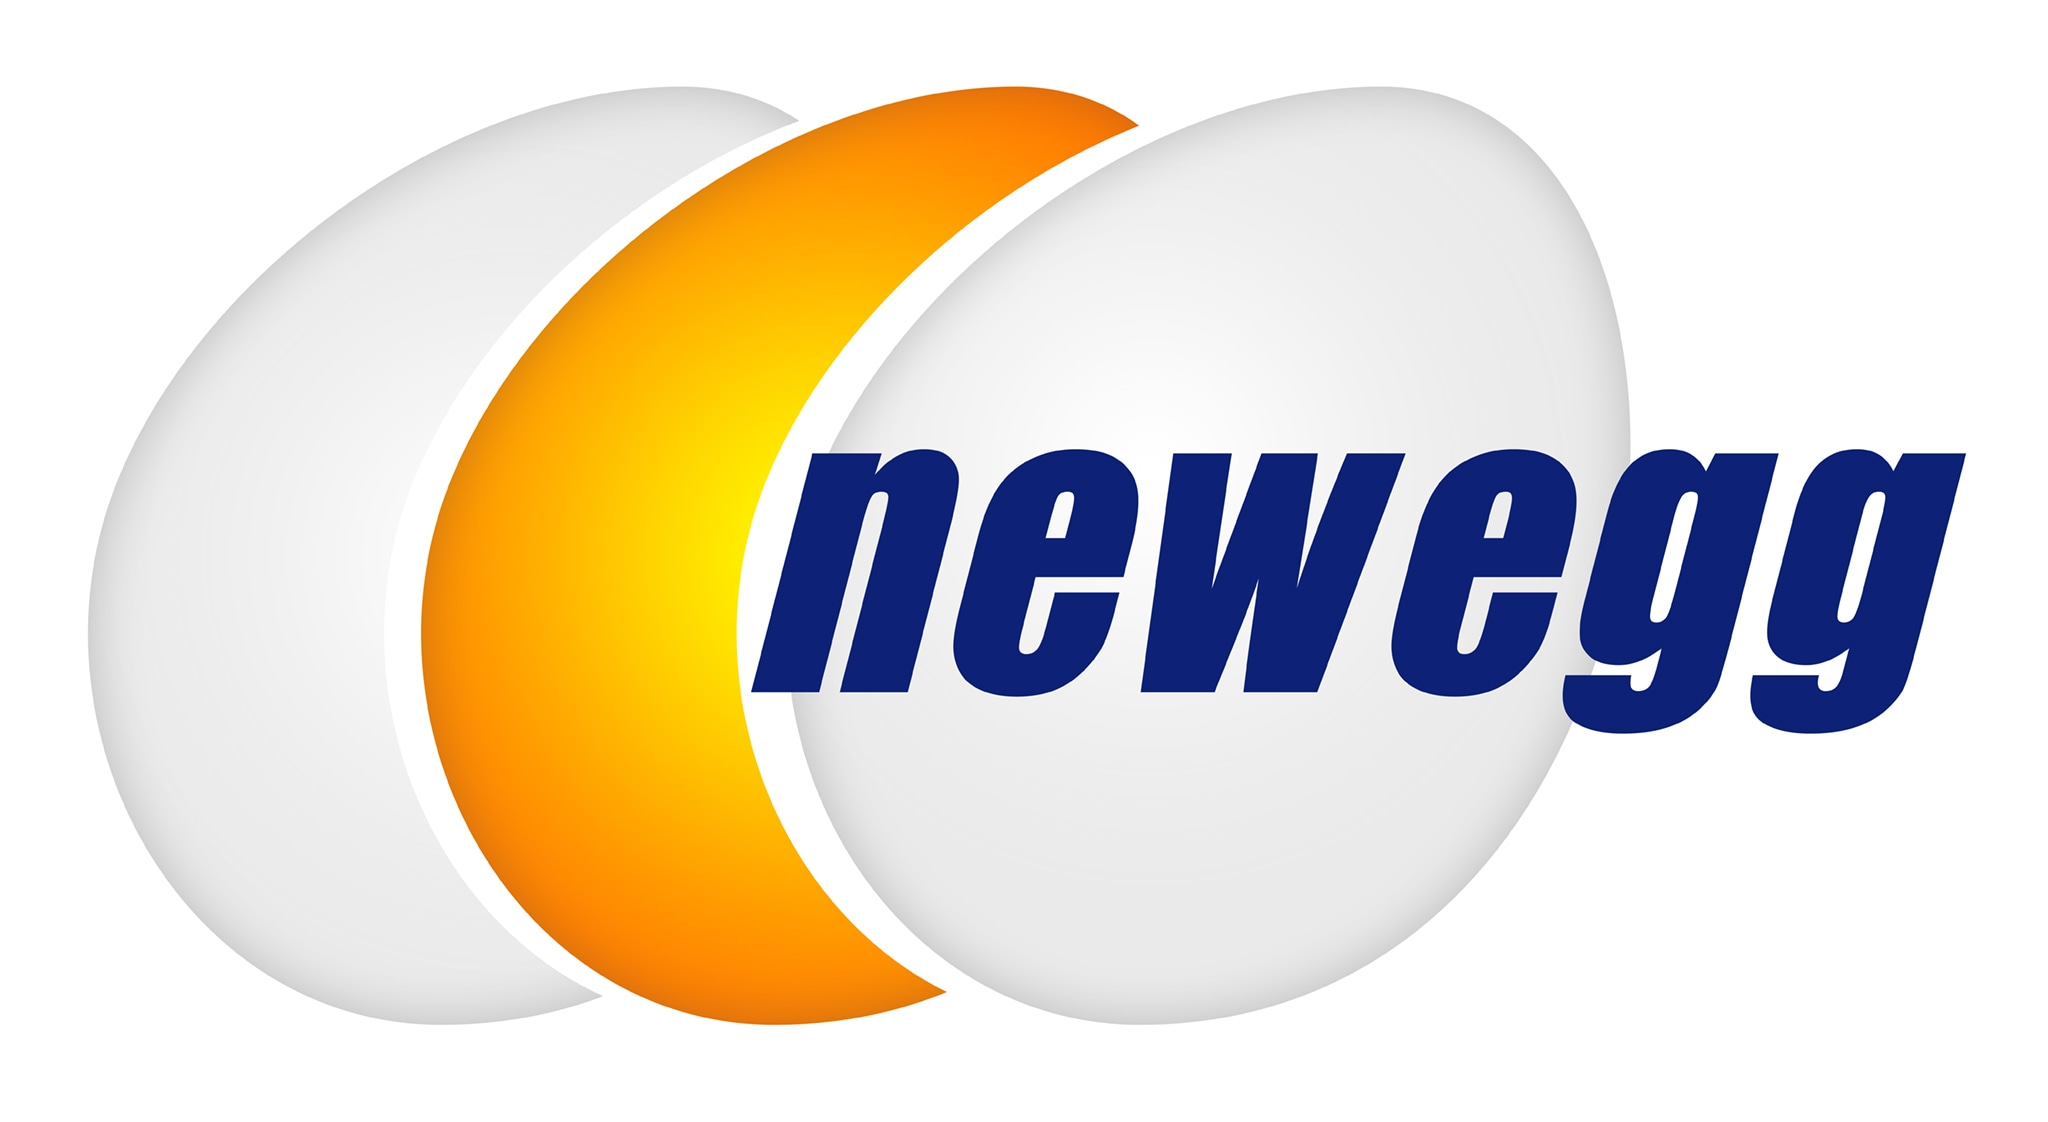 Shop newegg.com